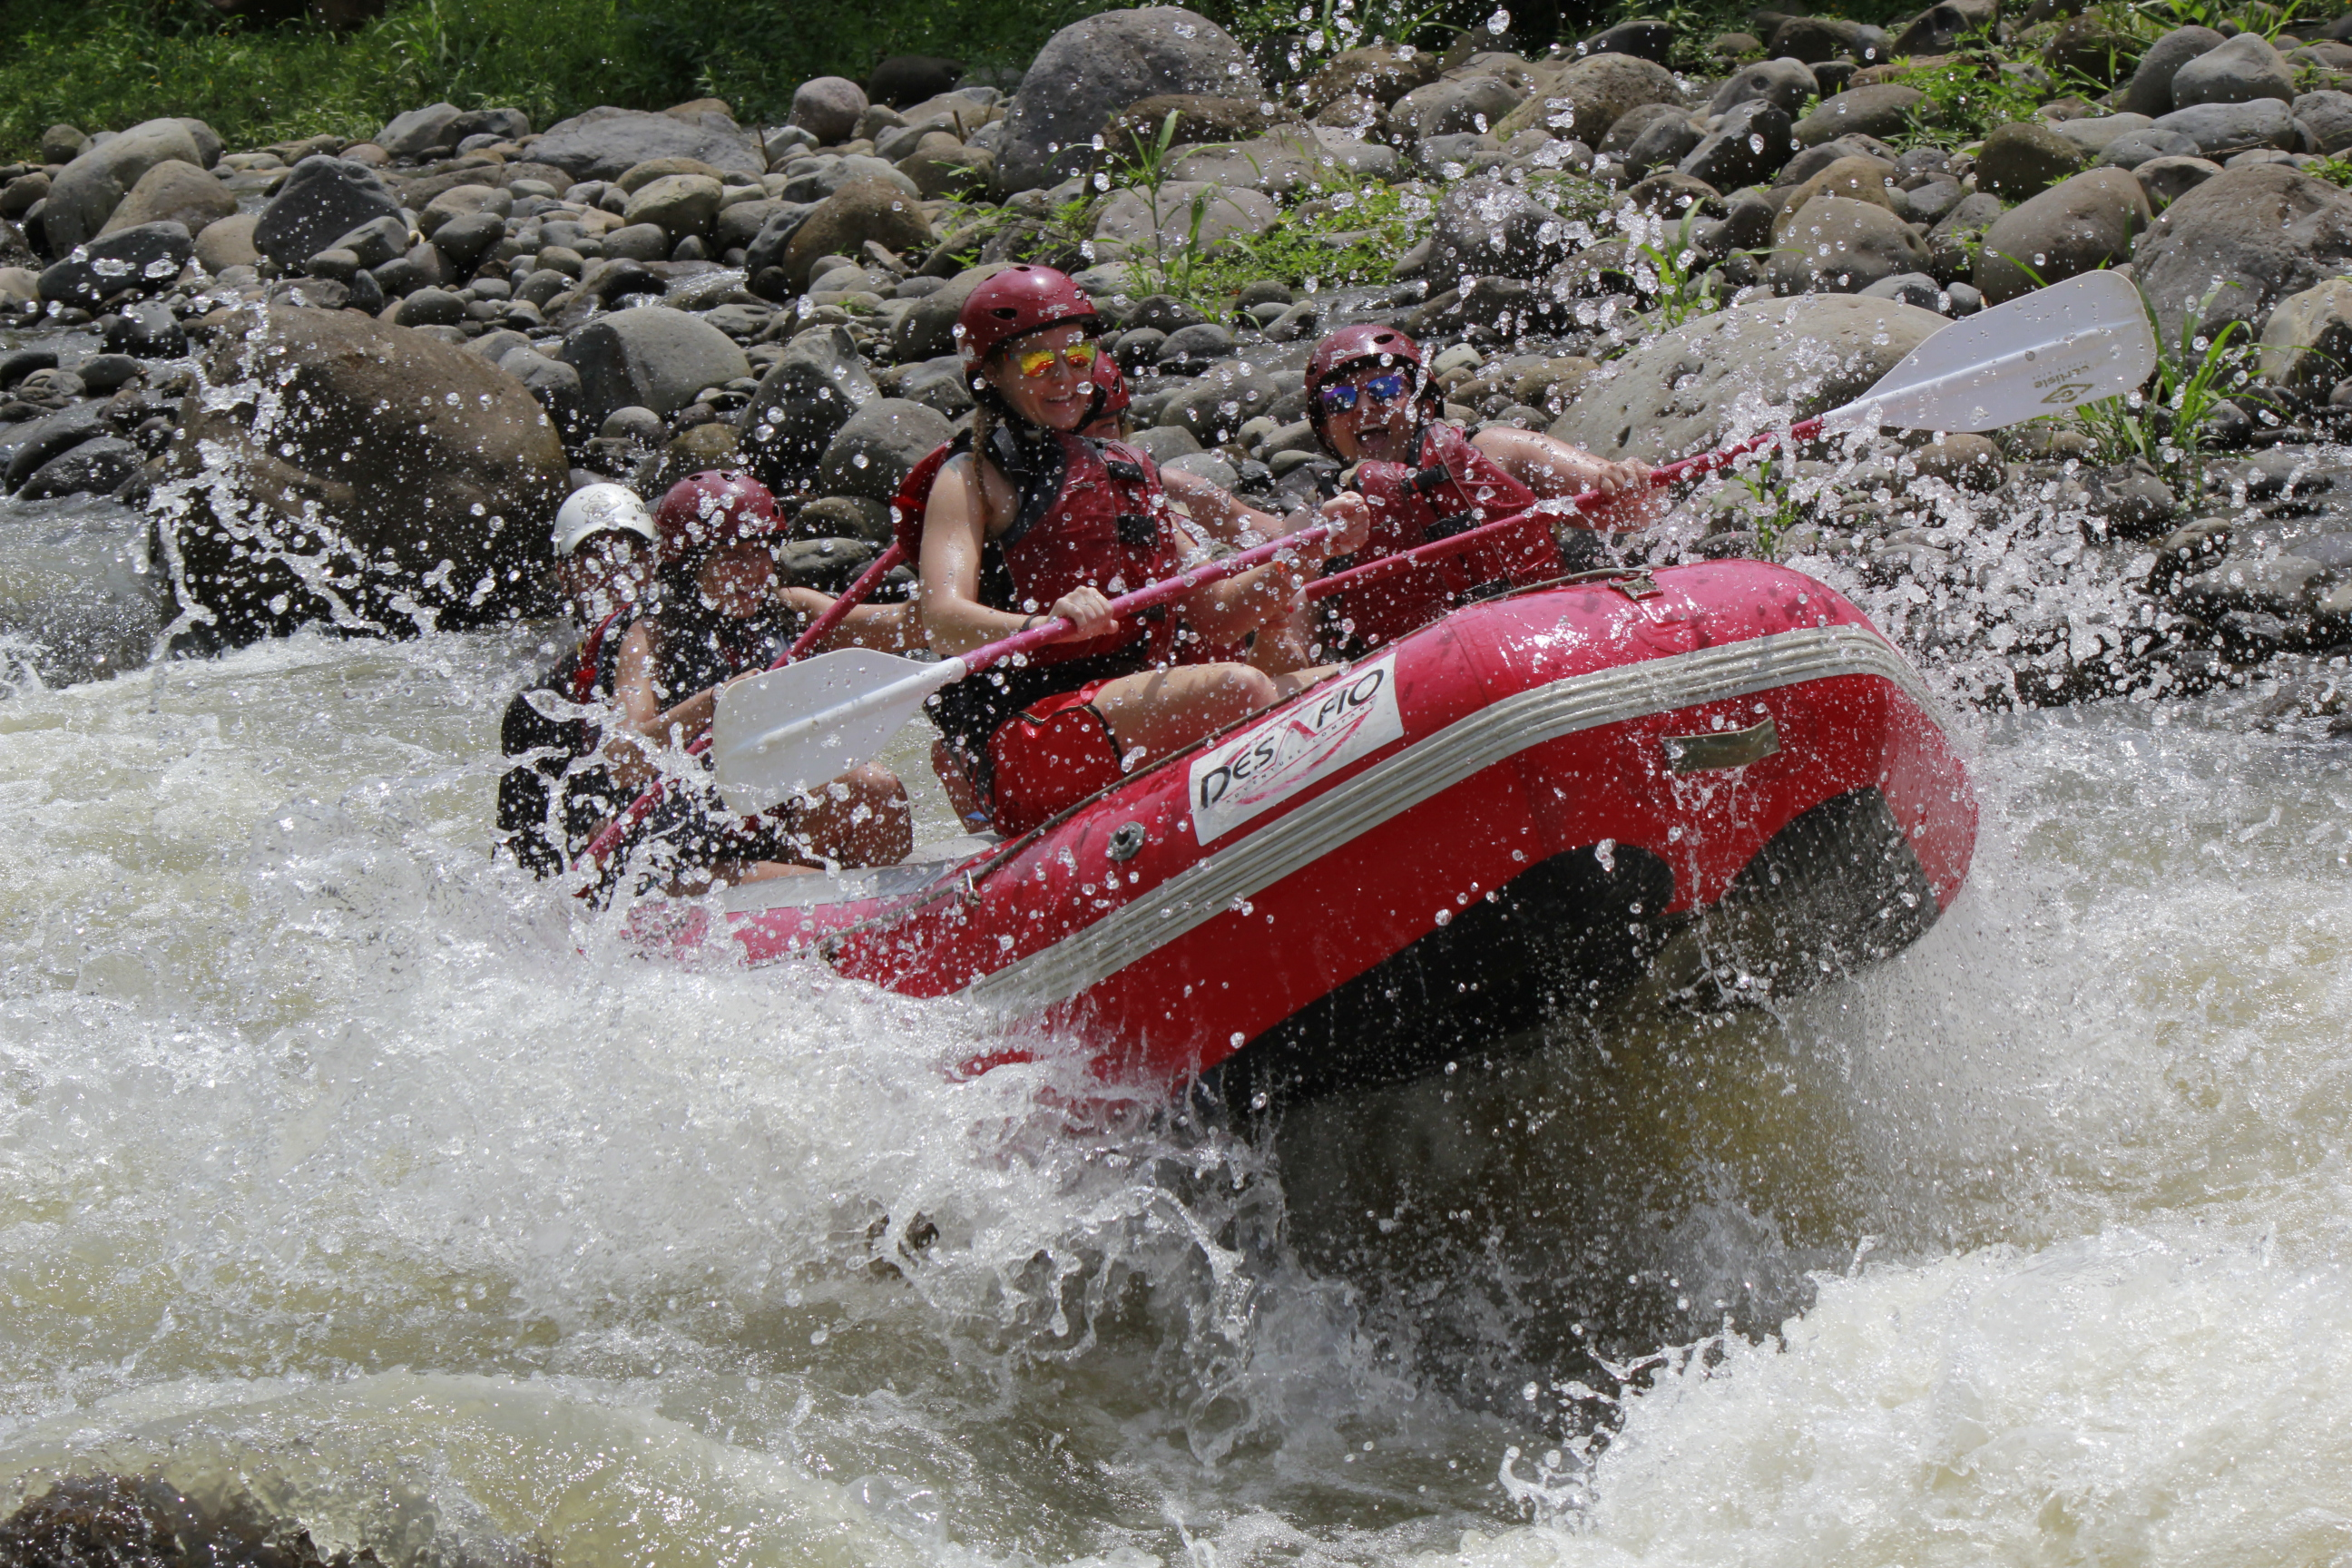 Intense adrenaline rafting with Desafio in Costa Rica.